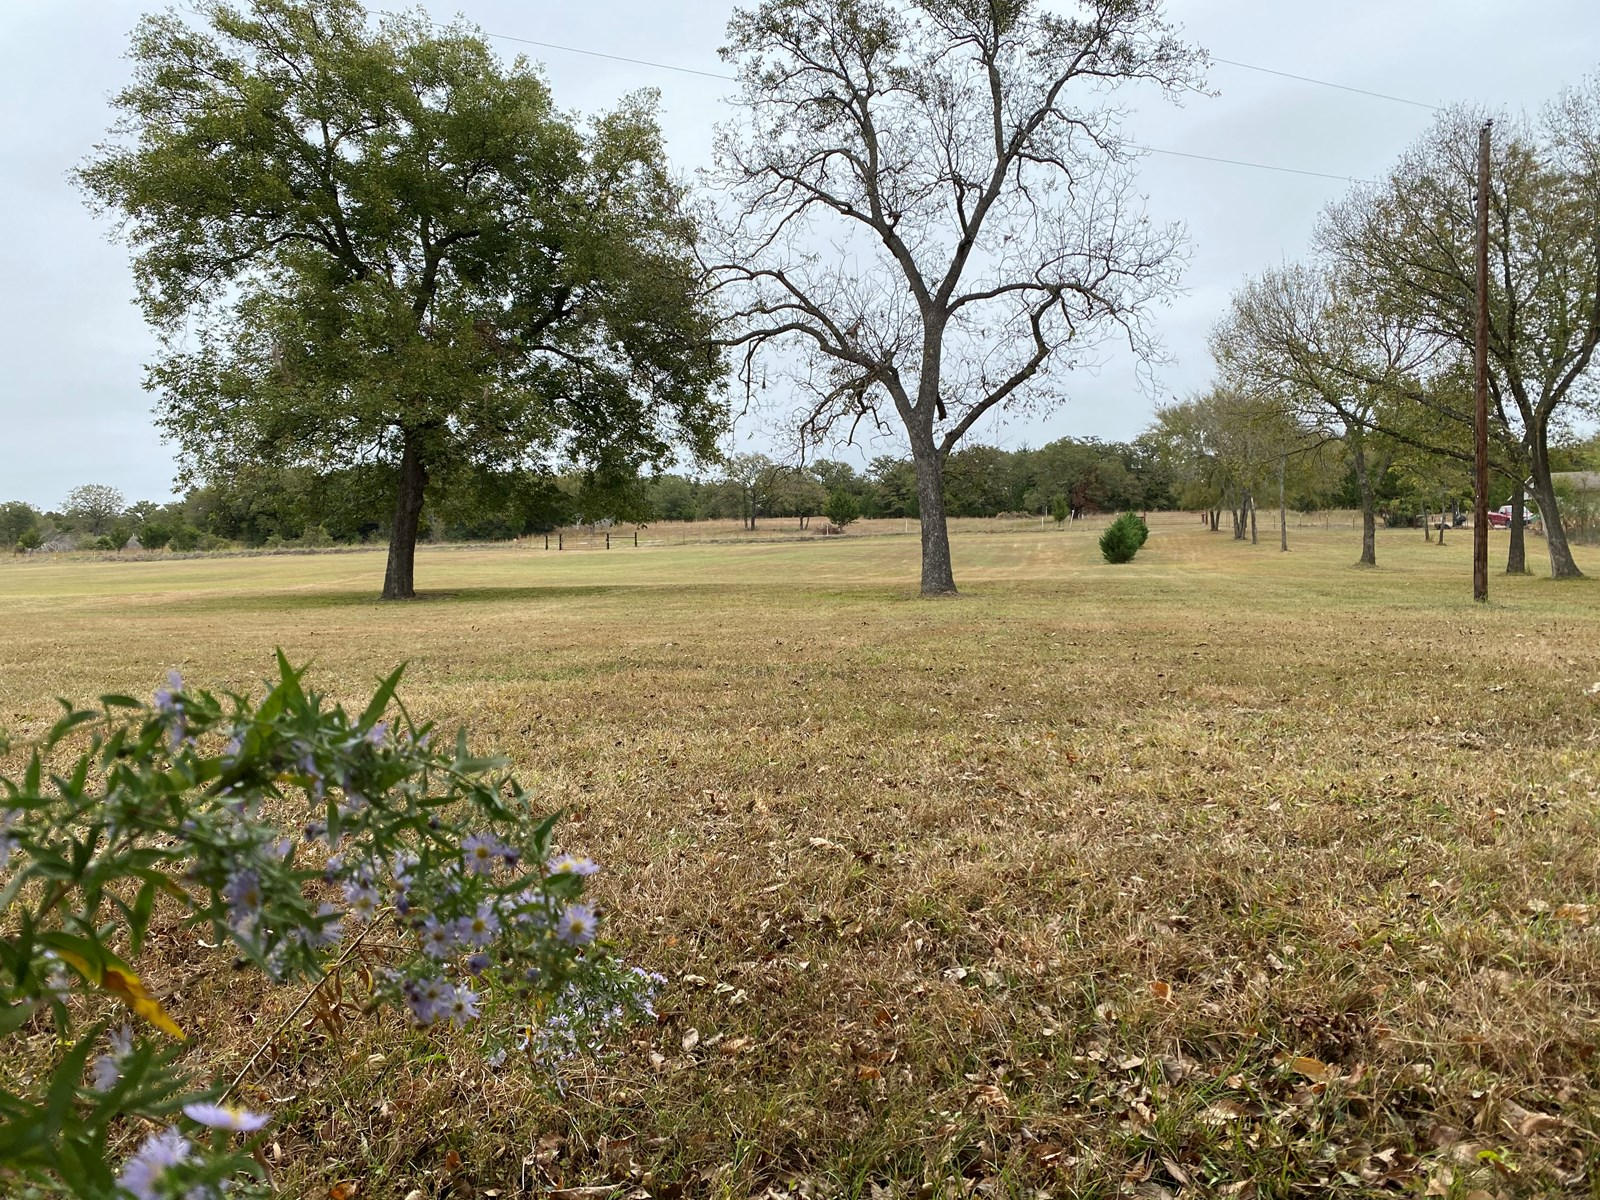 SOUTHERN OKLAHOMA LAND SUITABLE FOR BUILDING- CLOSE TO LAKES